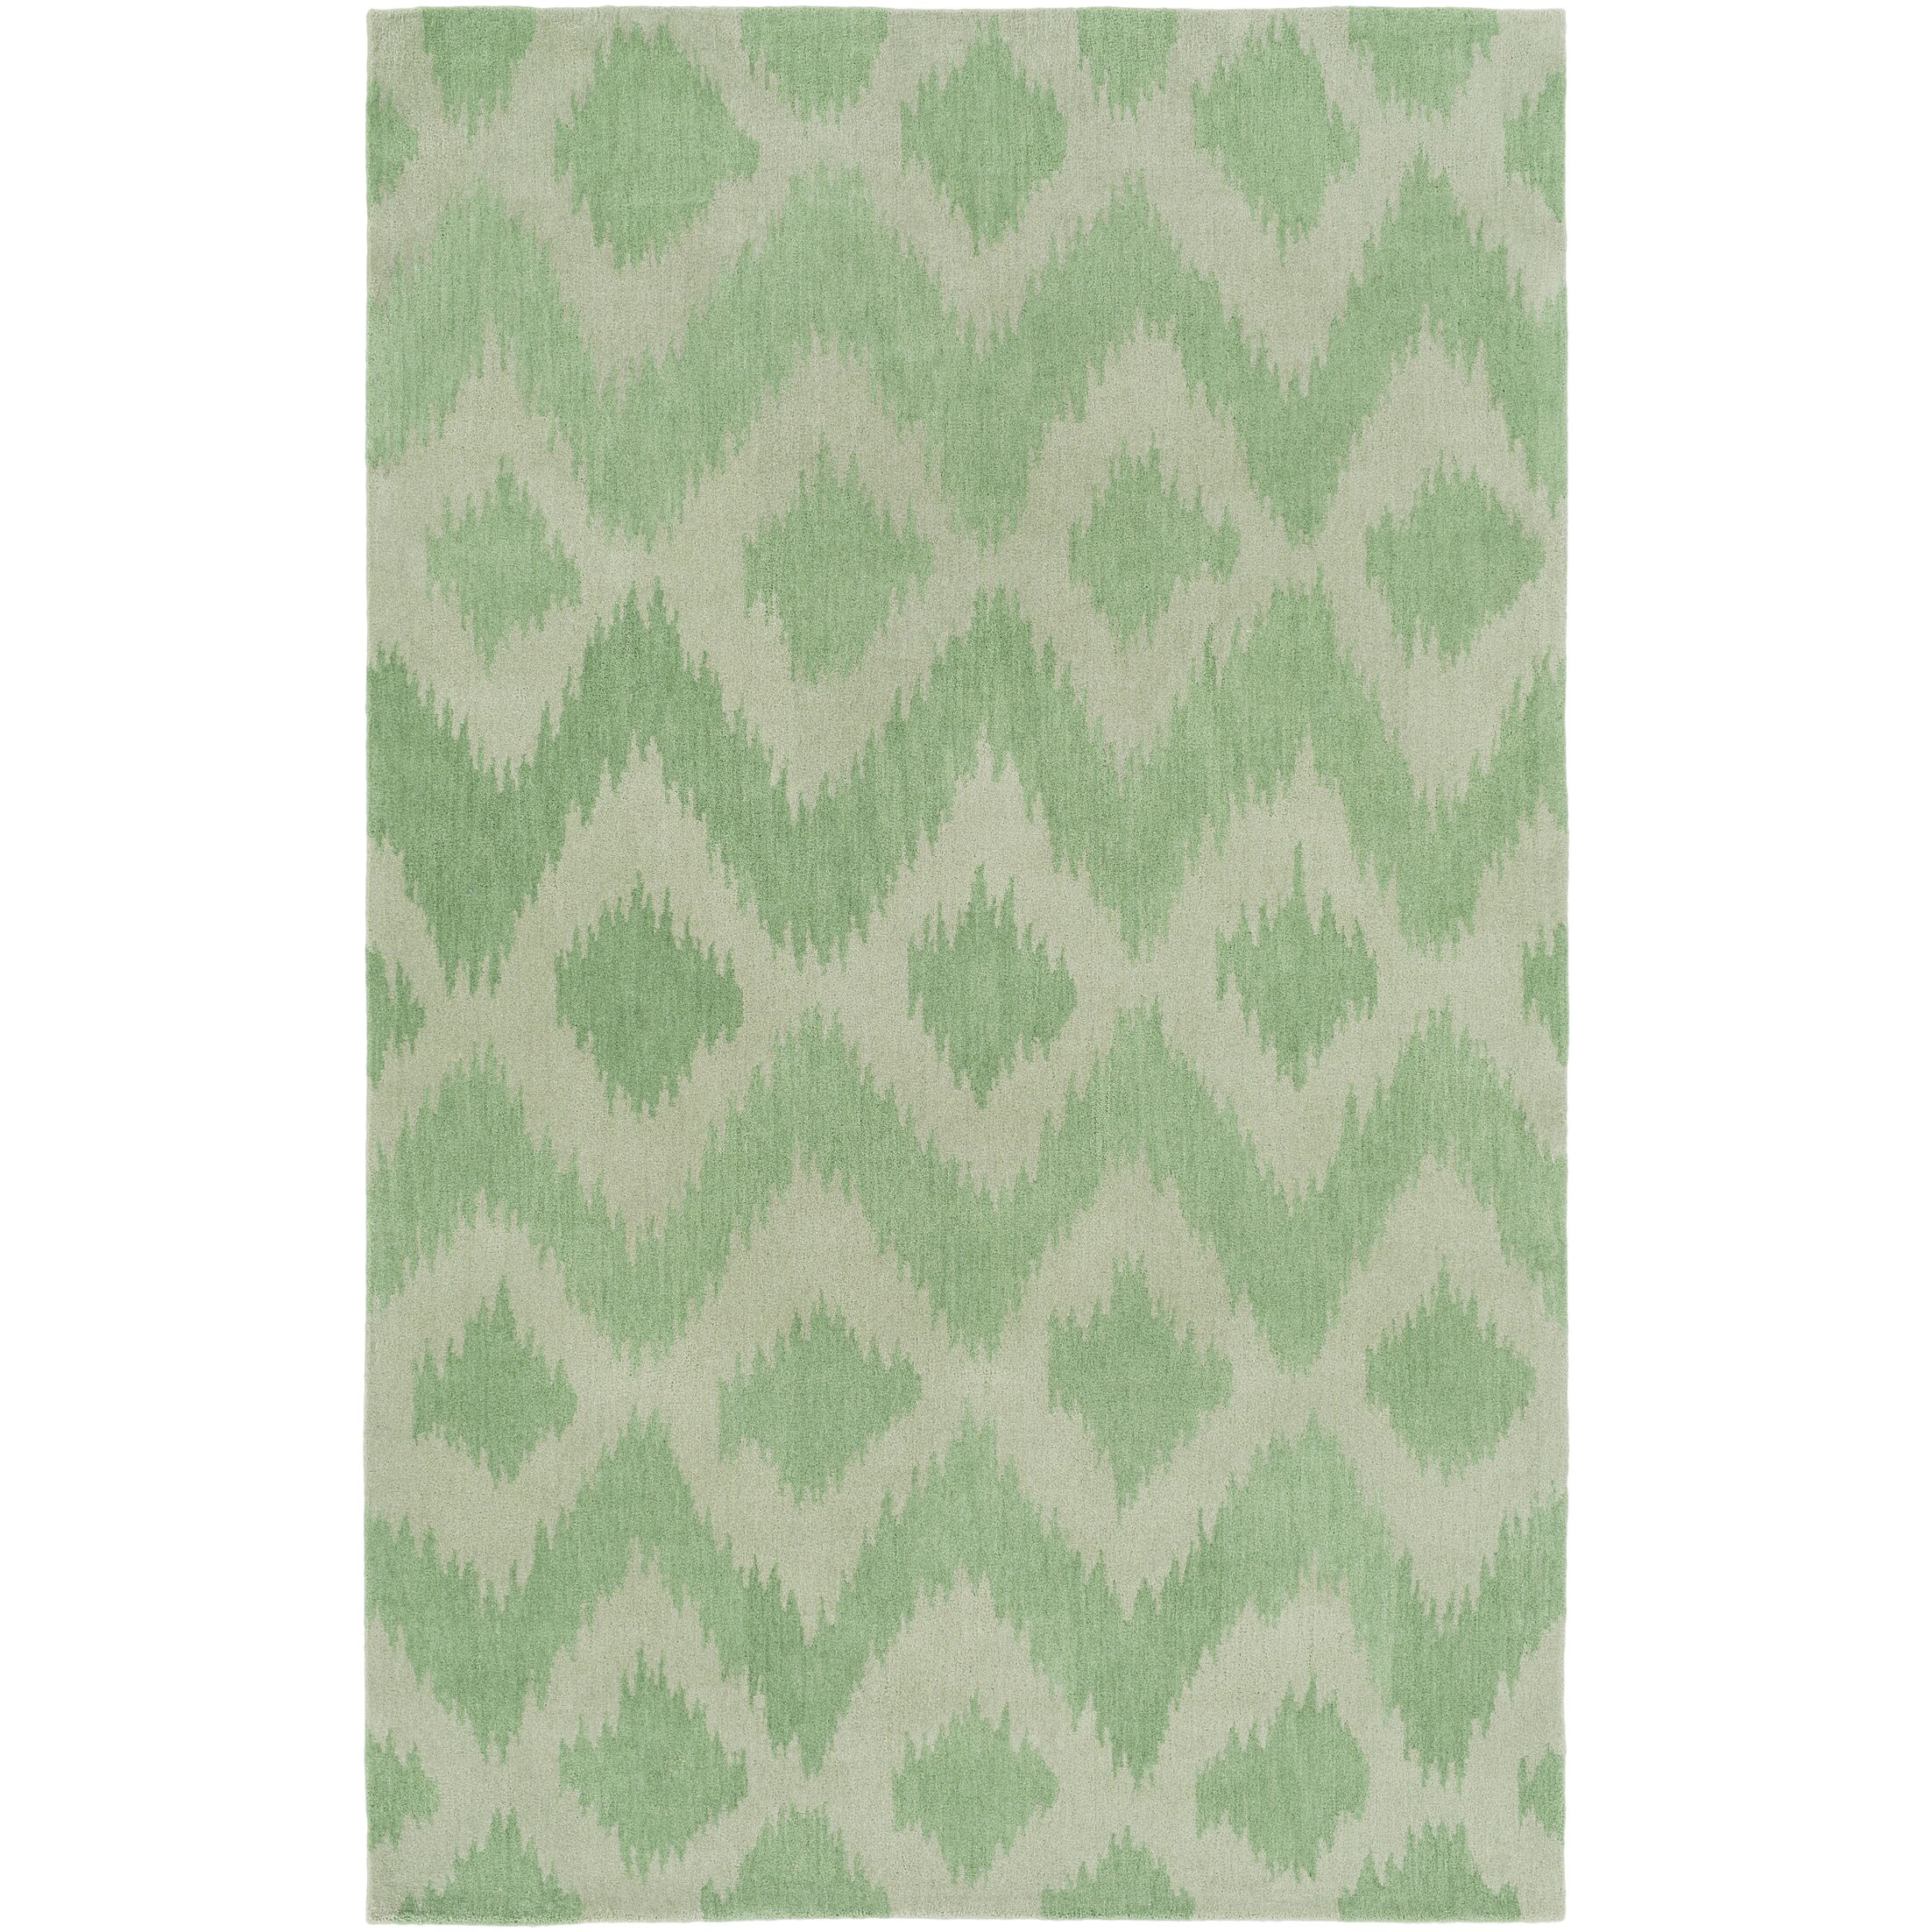 Arbuckle Hand-Tufted Grass Green/Moss Area Rug Rug Size: Rectangle 3' x 5'